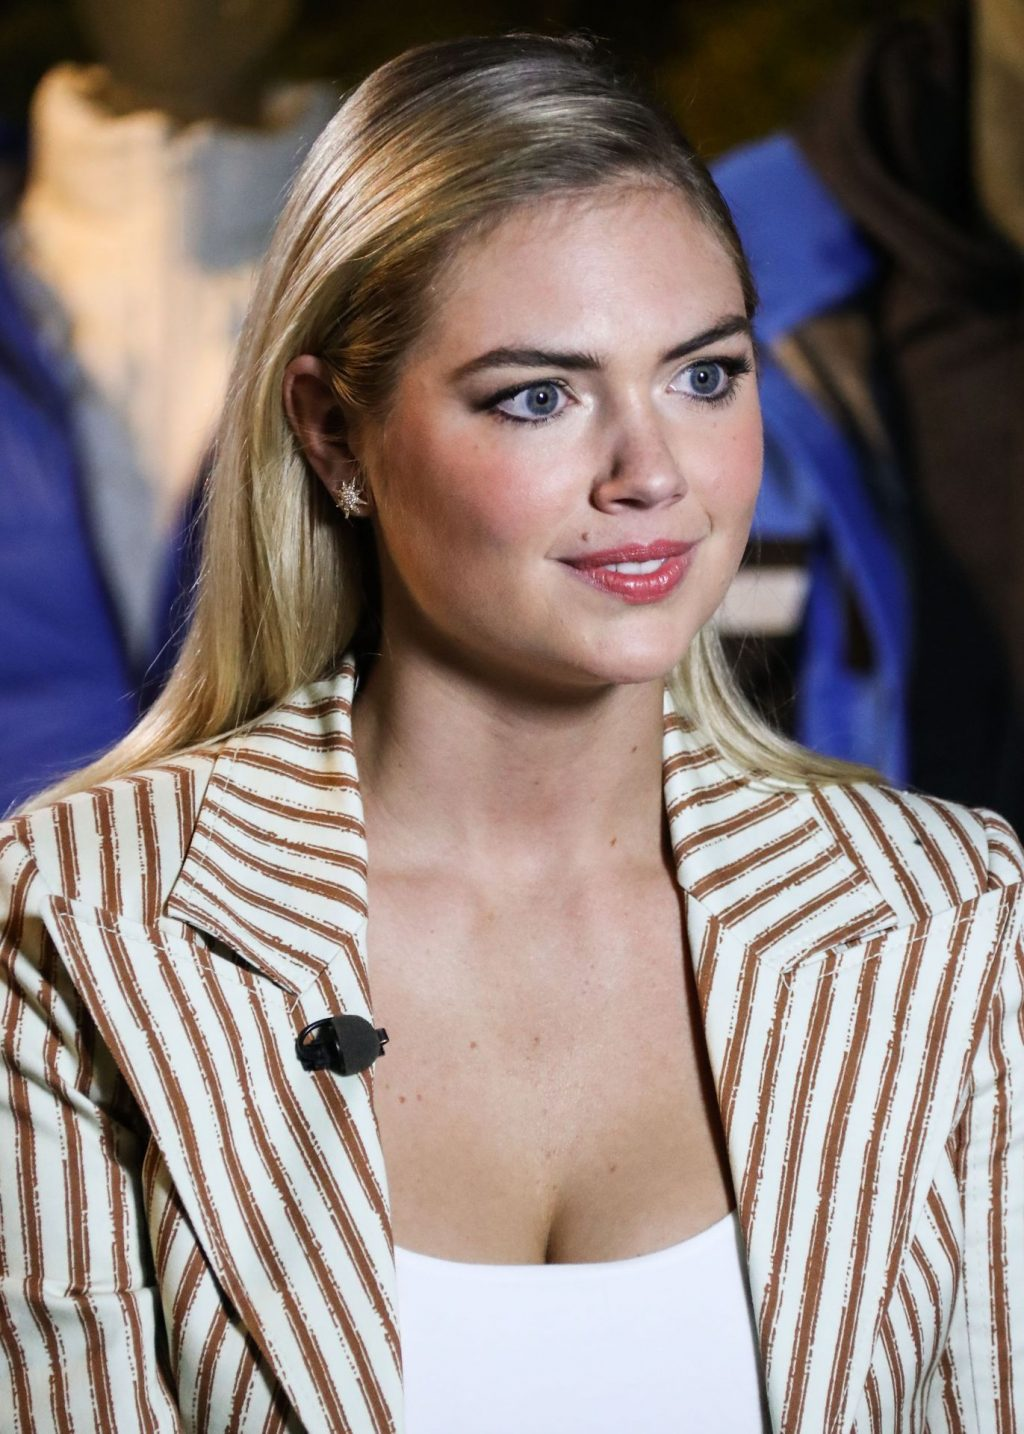 Kate Upton Sexy The Fappening Blog 104 1024x1434 - Kate Upton Attends Canada Goose And Vogue Cocktails & Conversations (104 Photos)